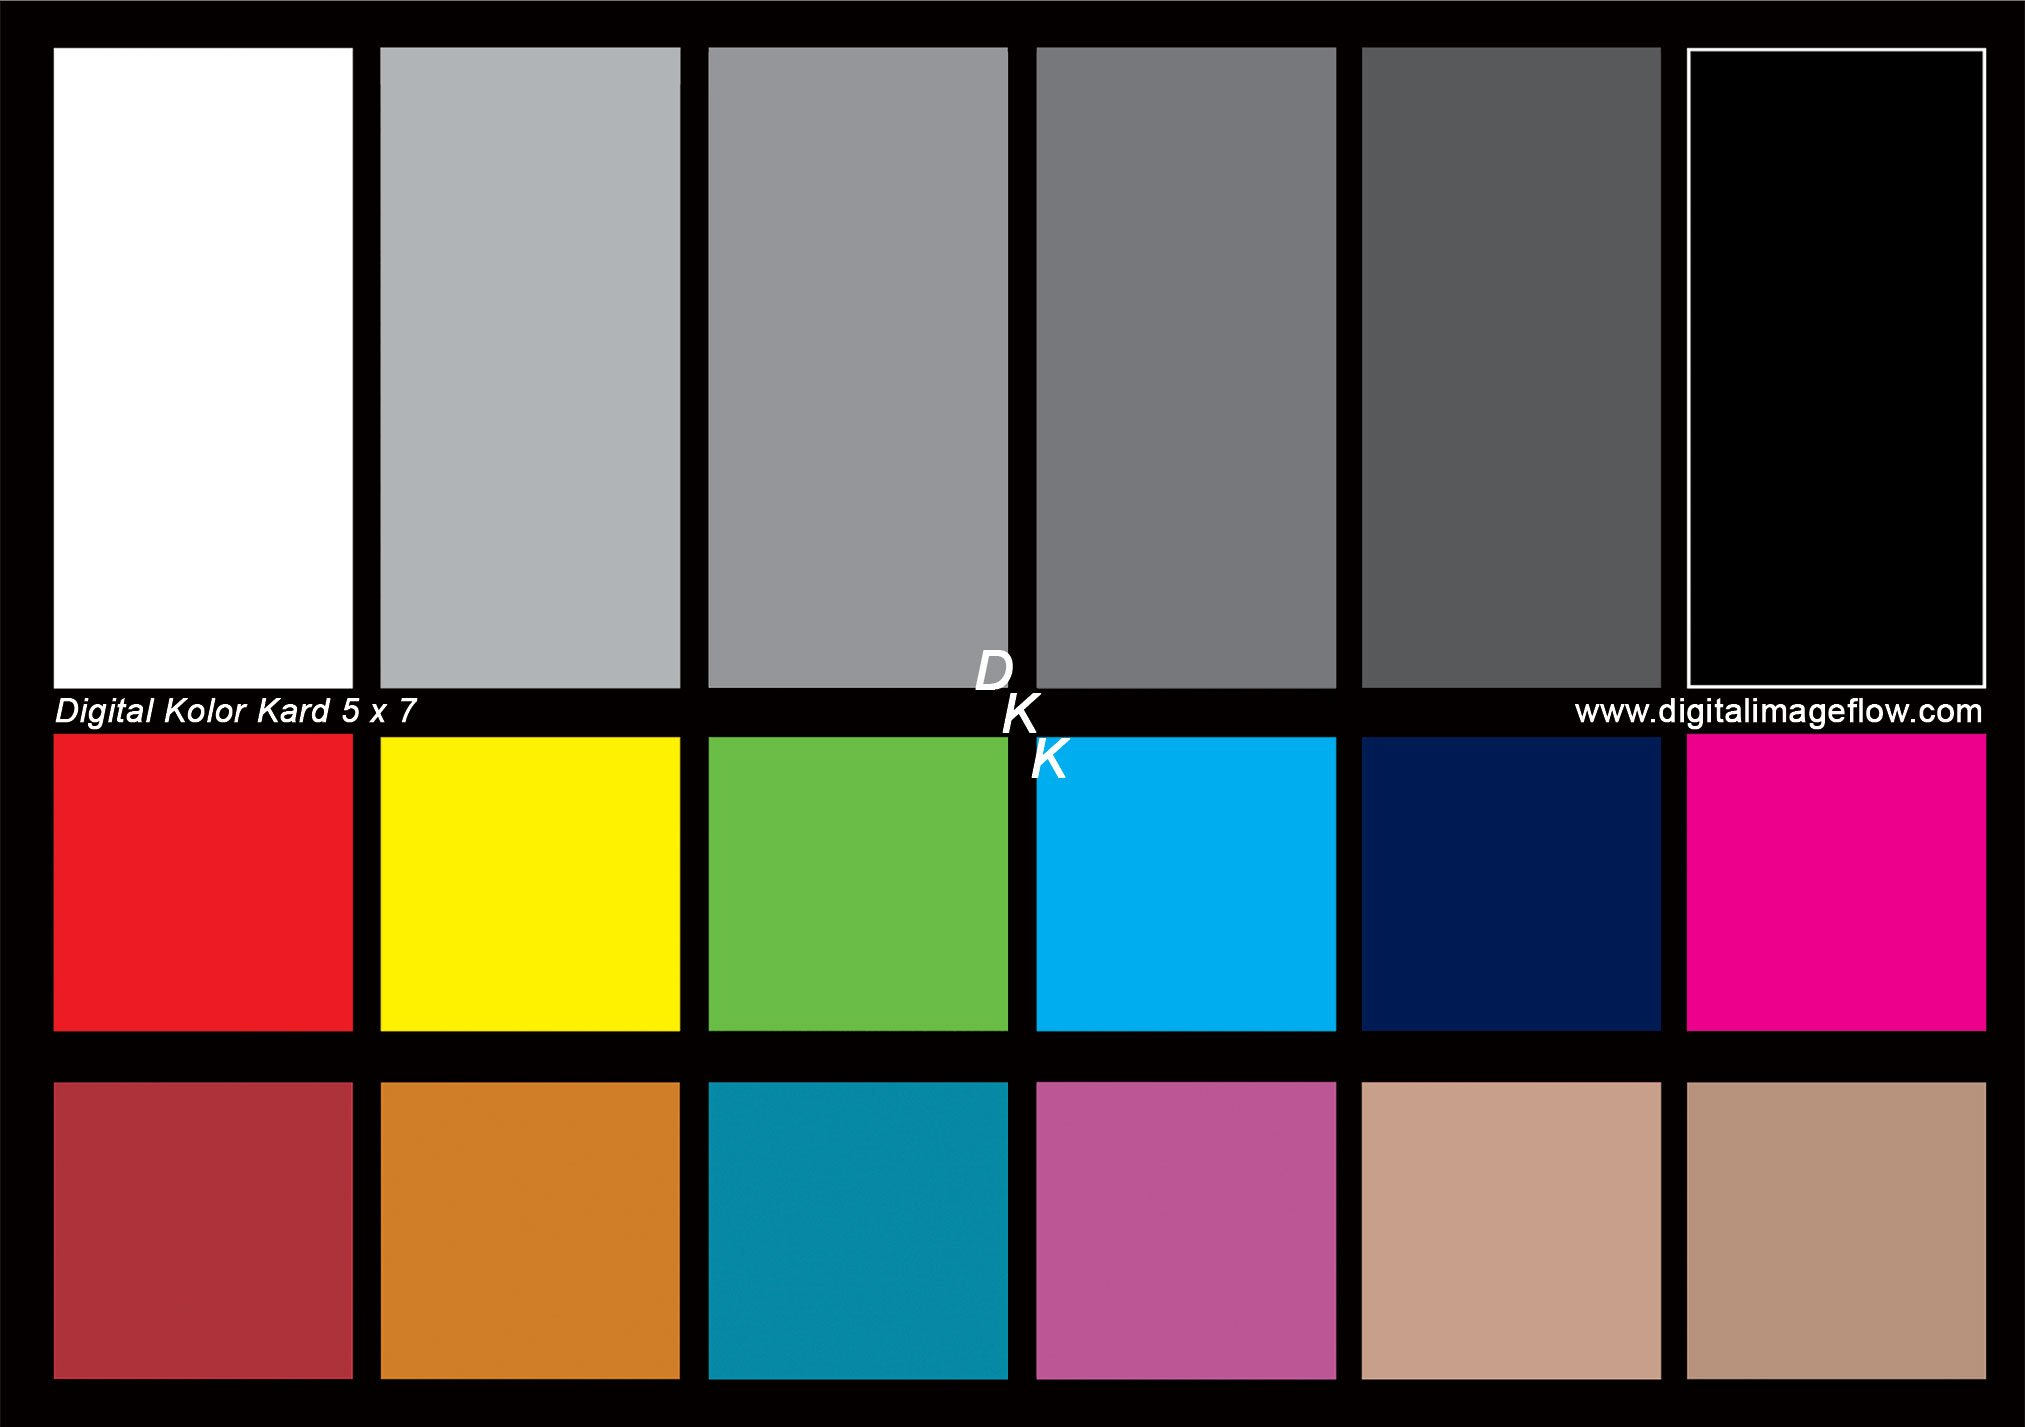 DGK Color Tools DKK 5'' x 7'' Set of 2 White Balance and Color Calibration Charts with 12% and 18% Gray - Includes Frame Stand and User Guide by DGK Color Tools